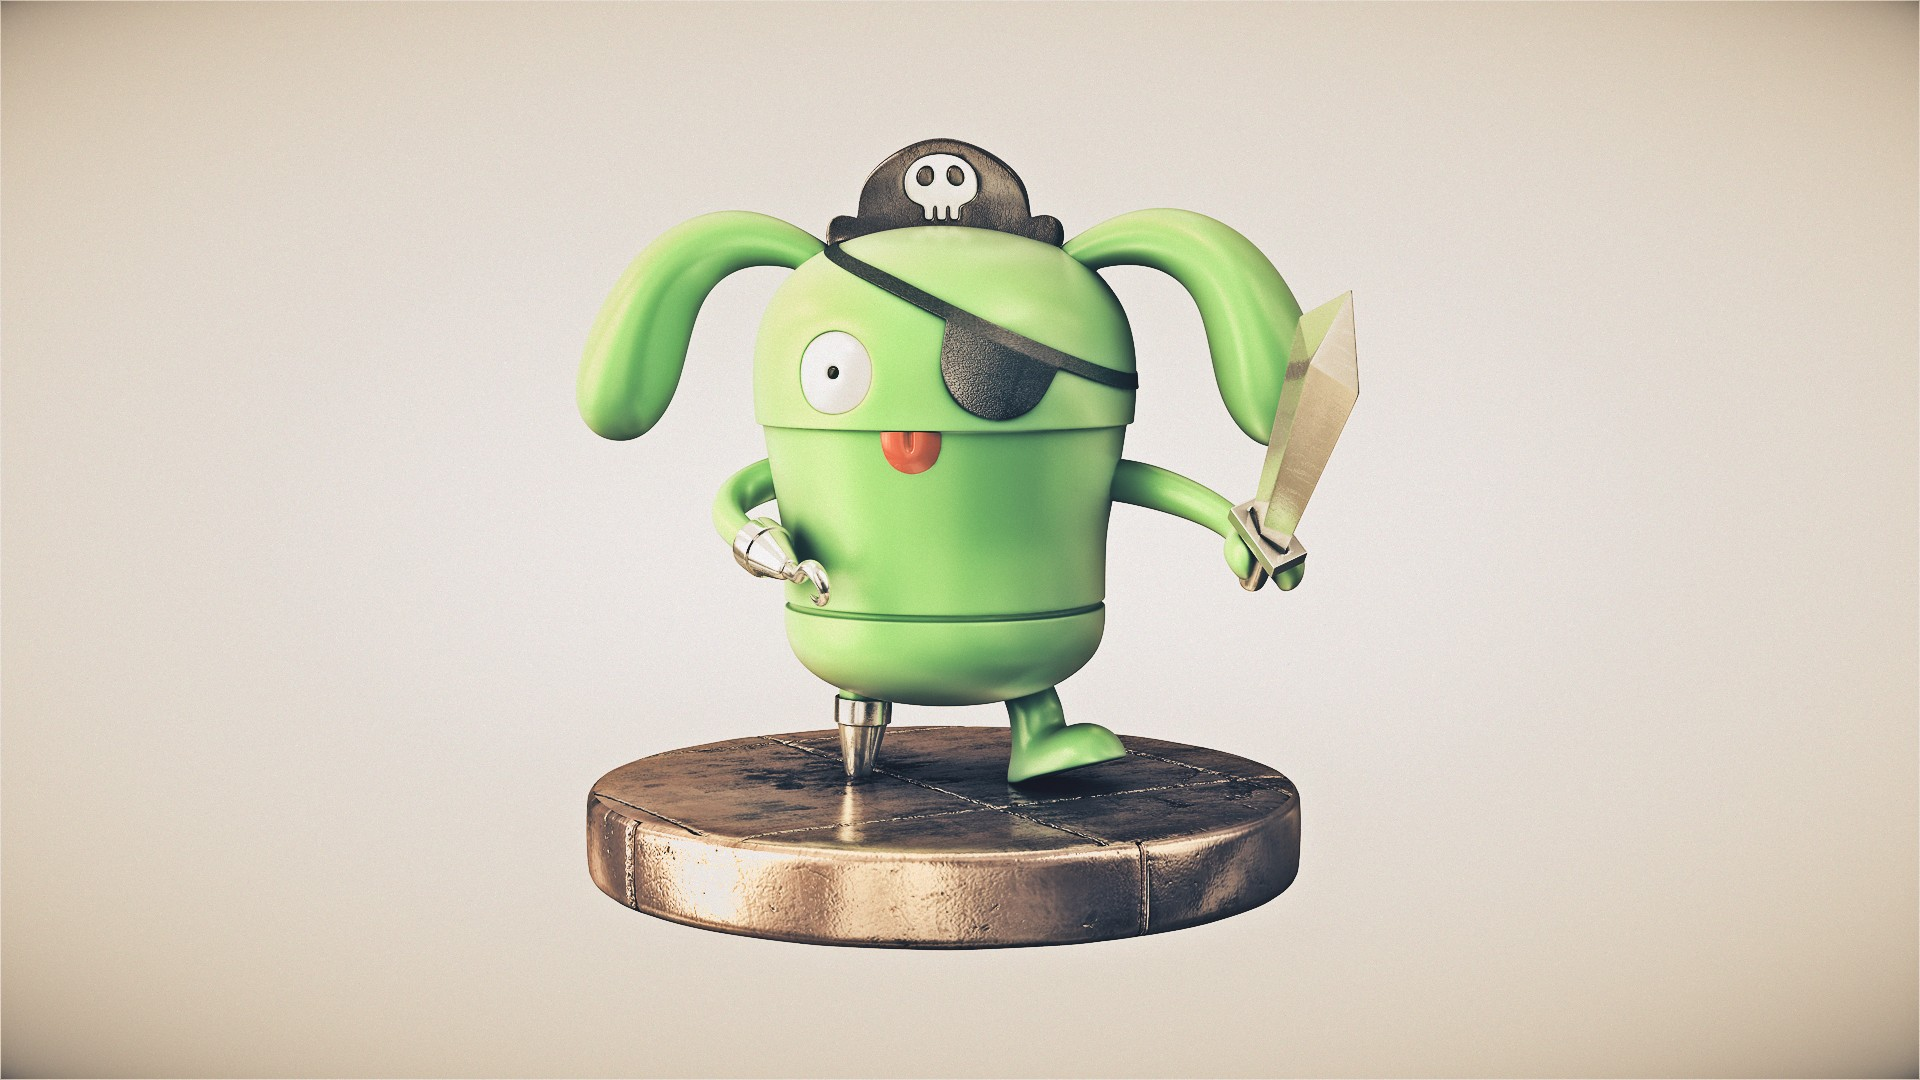 Pirate Android